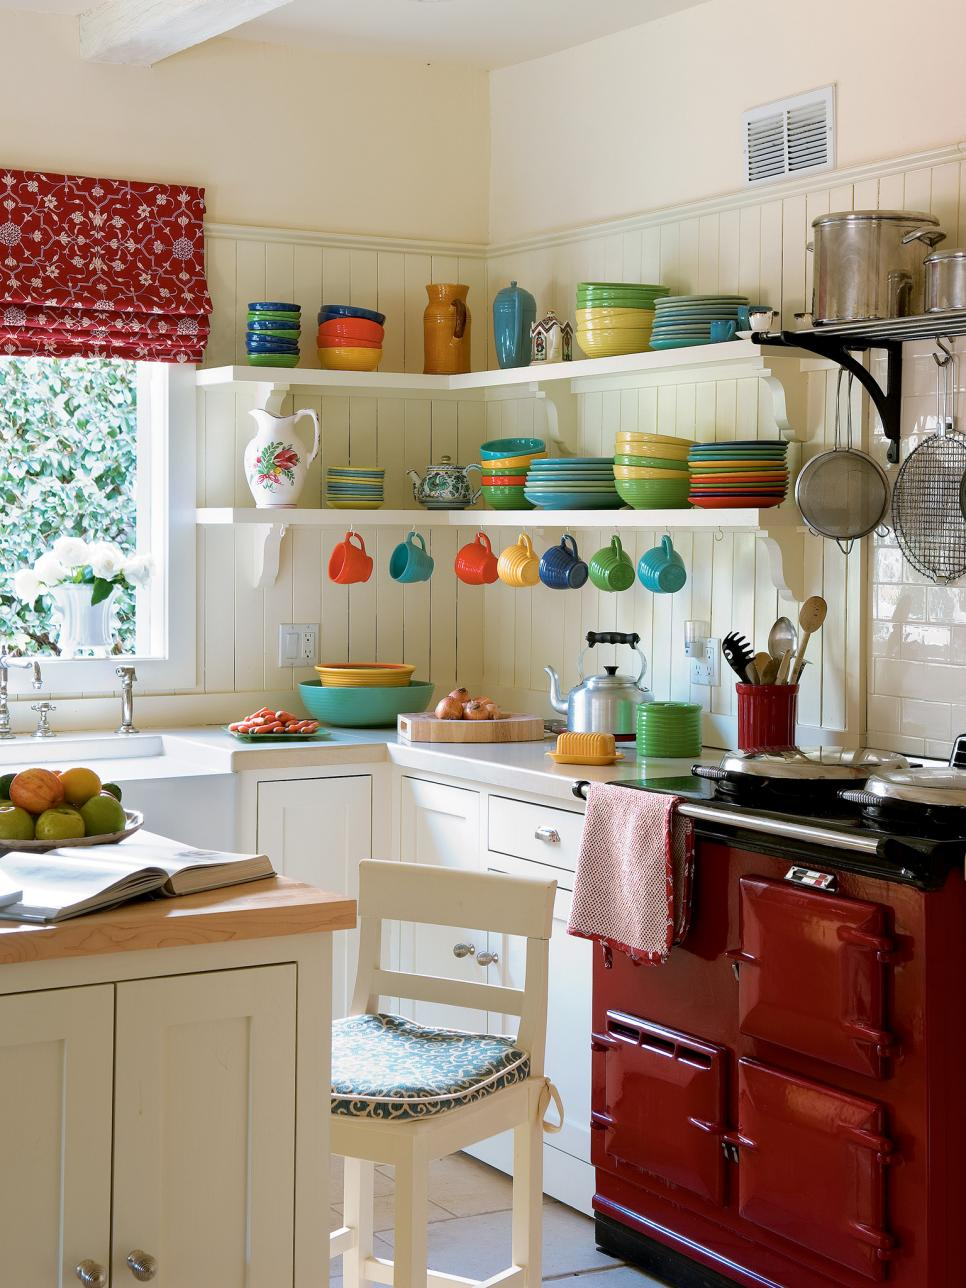 Kitchen Decor Ideas For Small Kitchen